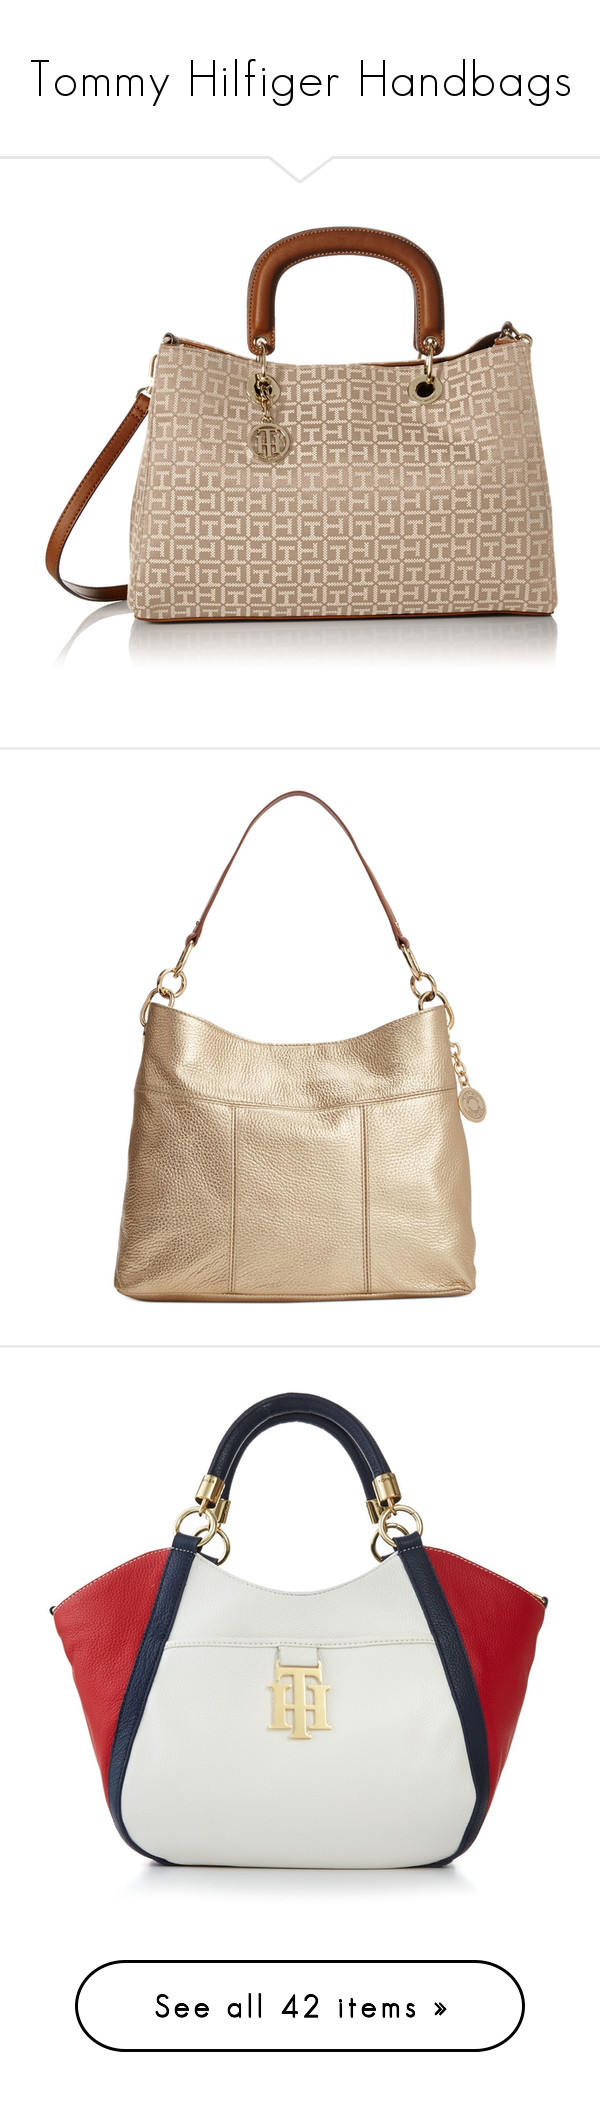 """""""Tommy Hilfiger Handbags"""" by stylesbymimi ❤ liked on Polyvore featuring bags, handbags, shoulder bags, shoulder shopping bag, brown purse, brown handbags, shopping bag, tommy hilfiger, metalic gold and white leather purse"""